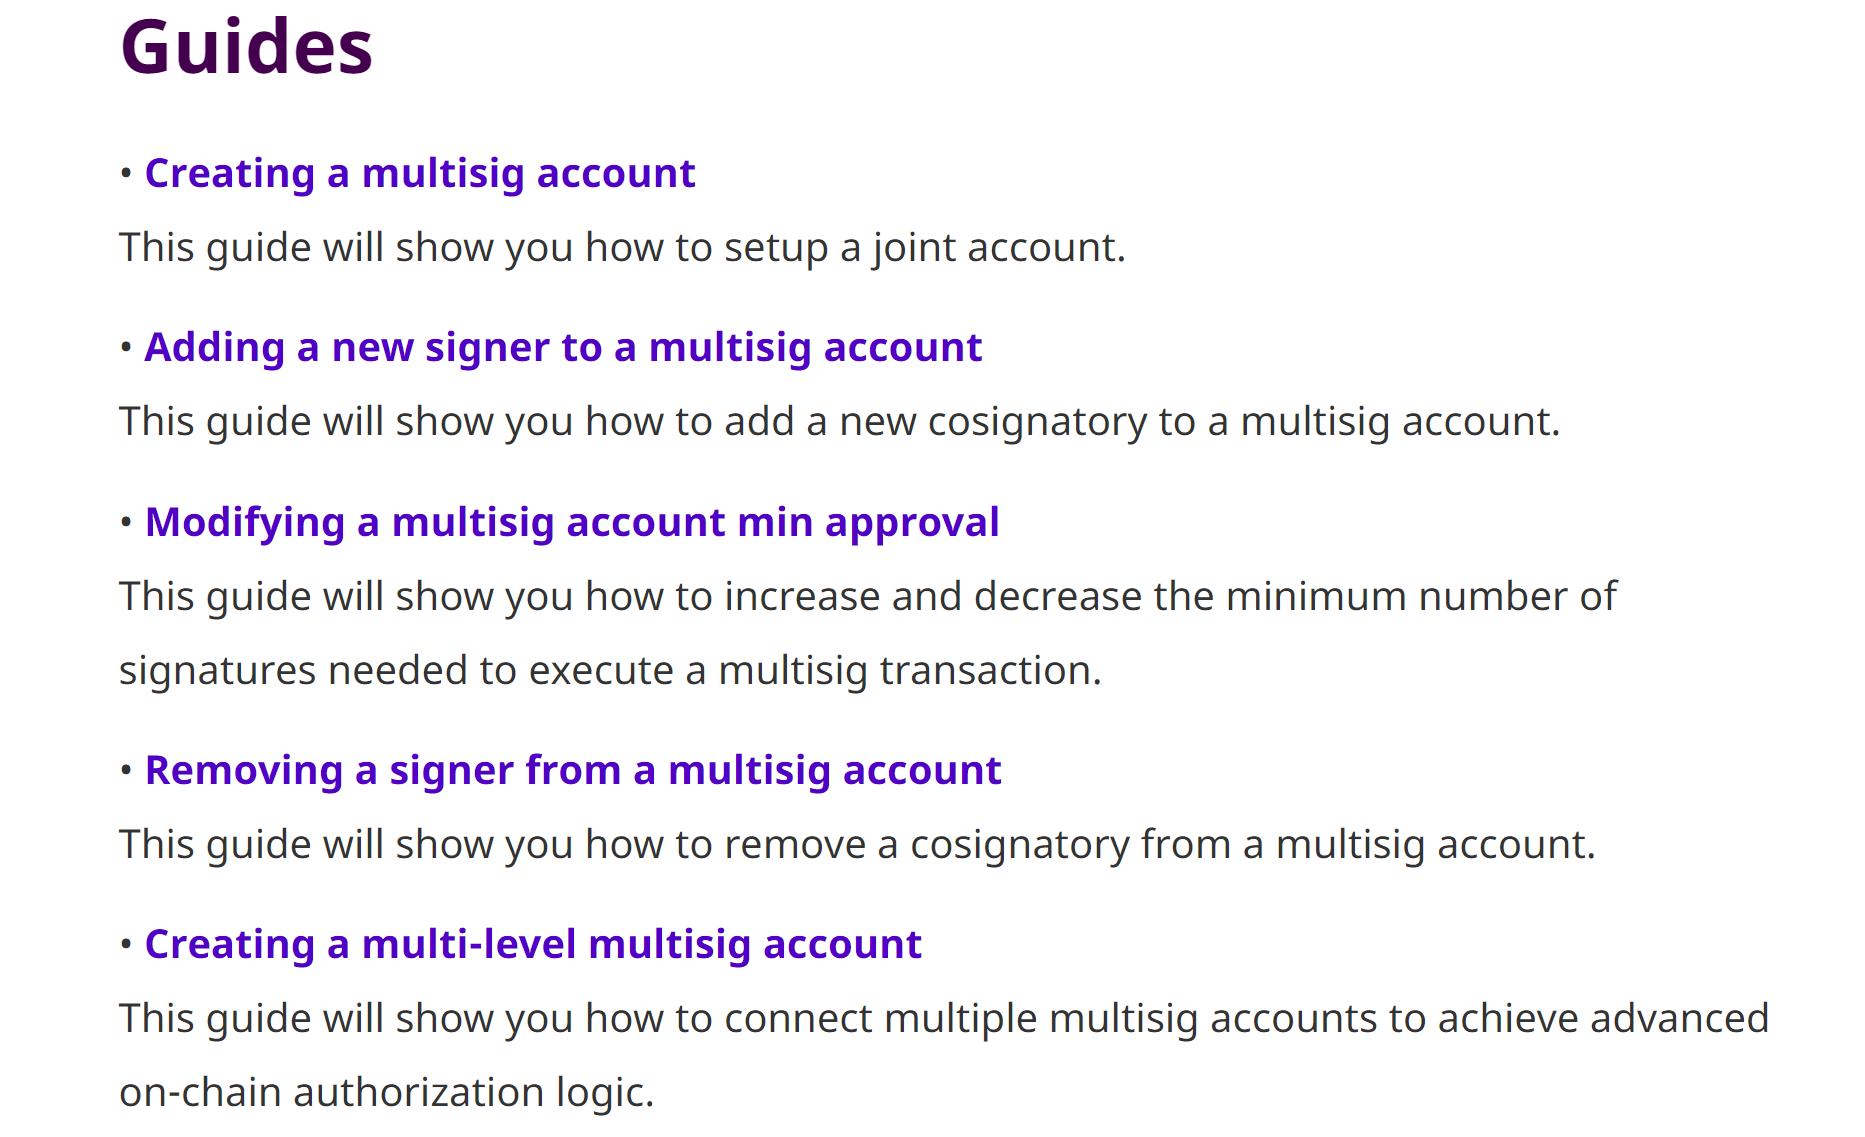 Guides for managing multisig accounts